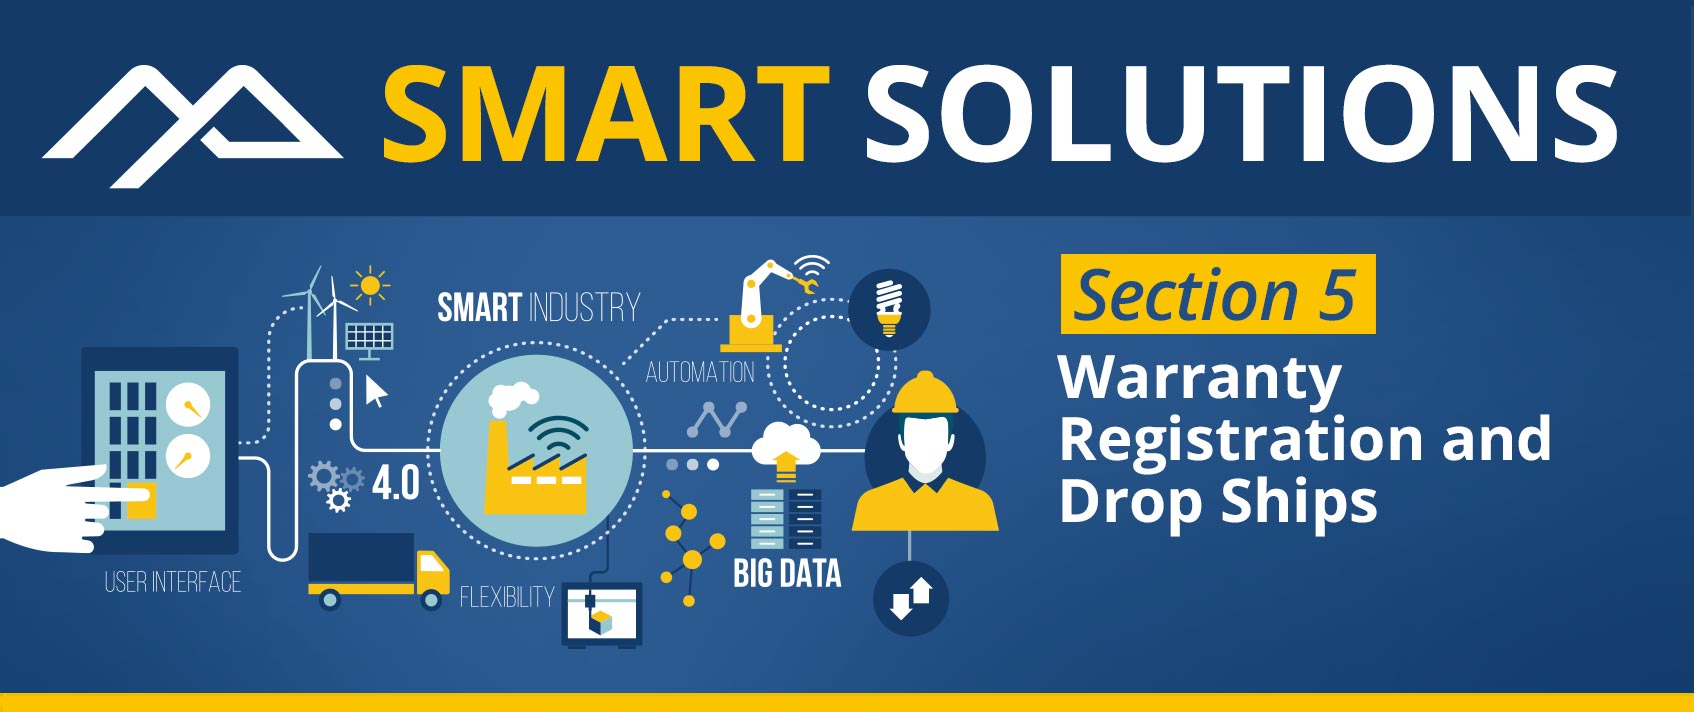 Smart Solutions - Warranty Registration and Drop Ships